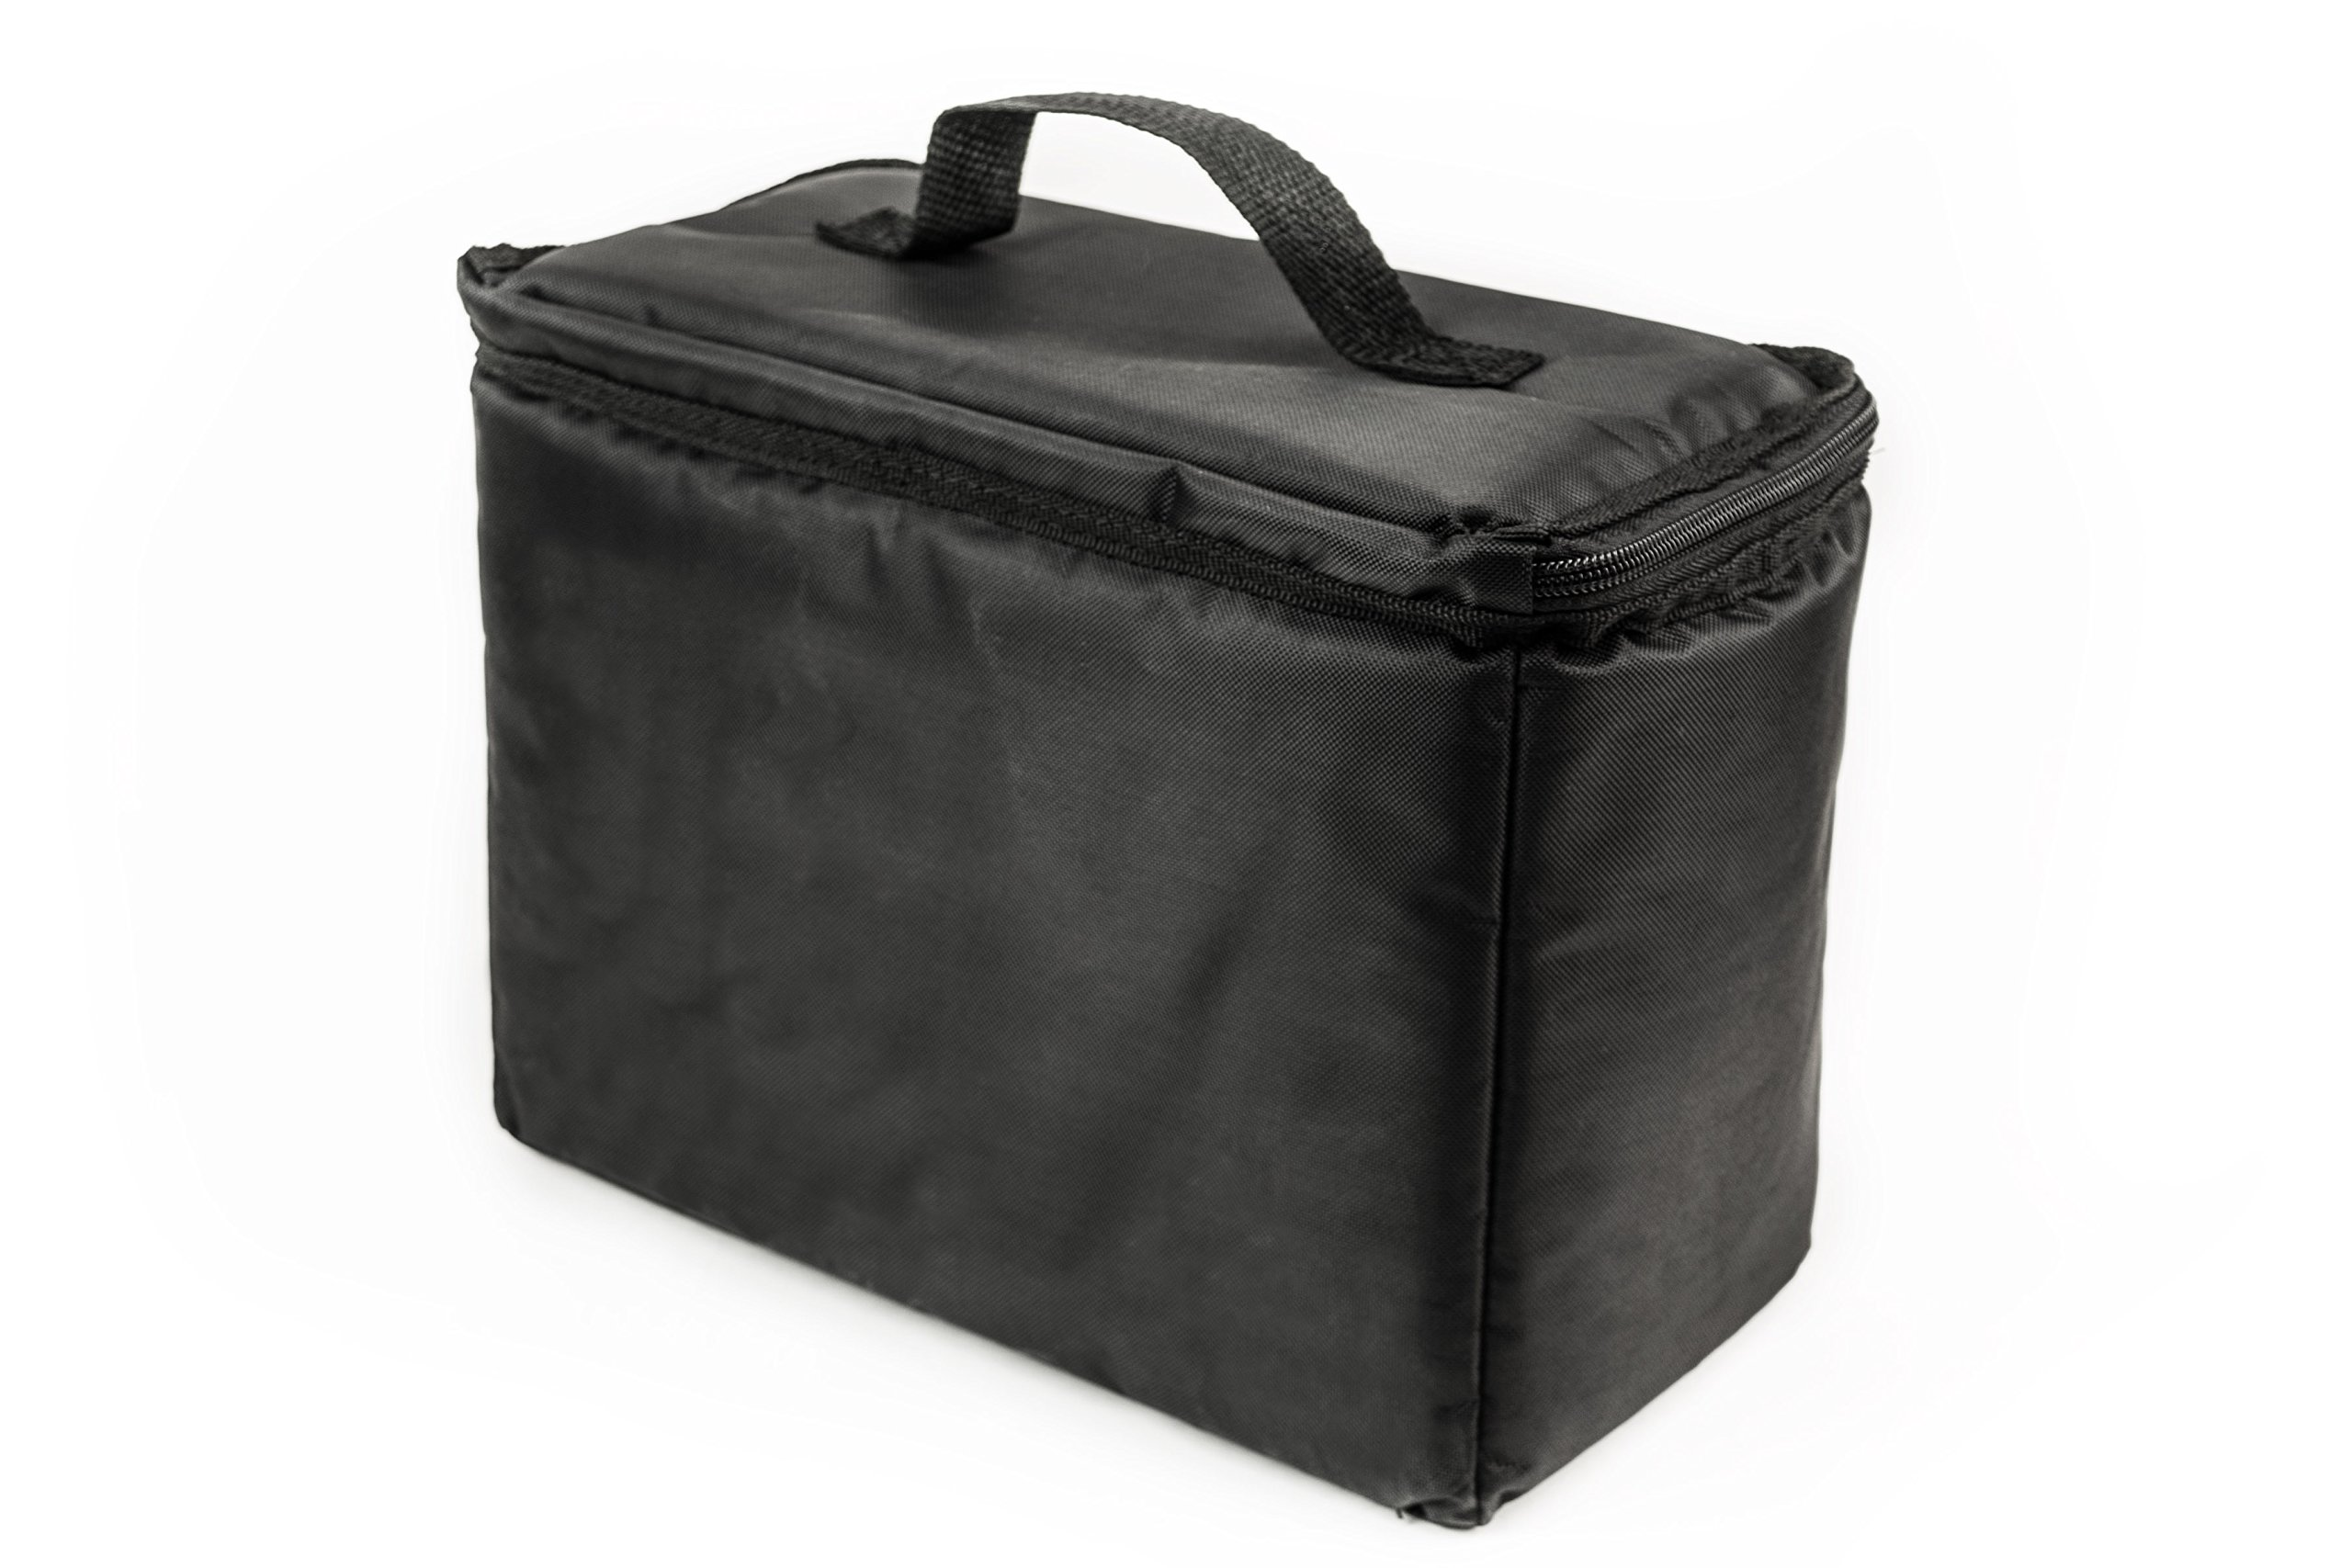 AutoExec AETote-09 Black/Grey File Tote with One Cooler and One Tablet Case by AutoExec (Image #6)